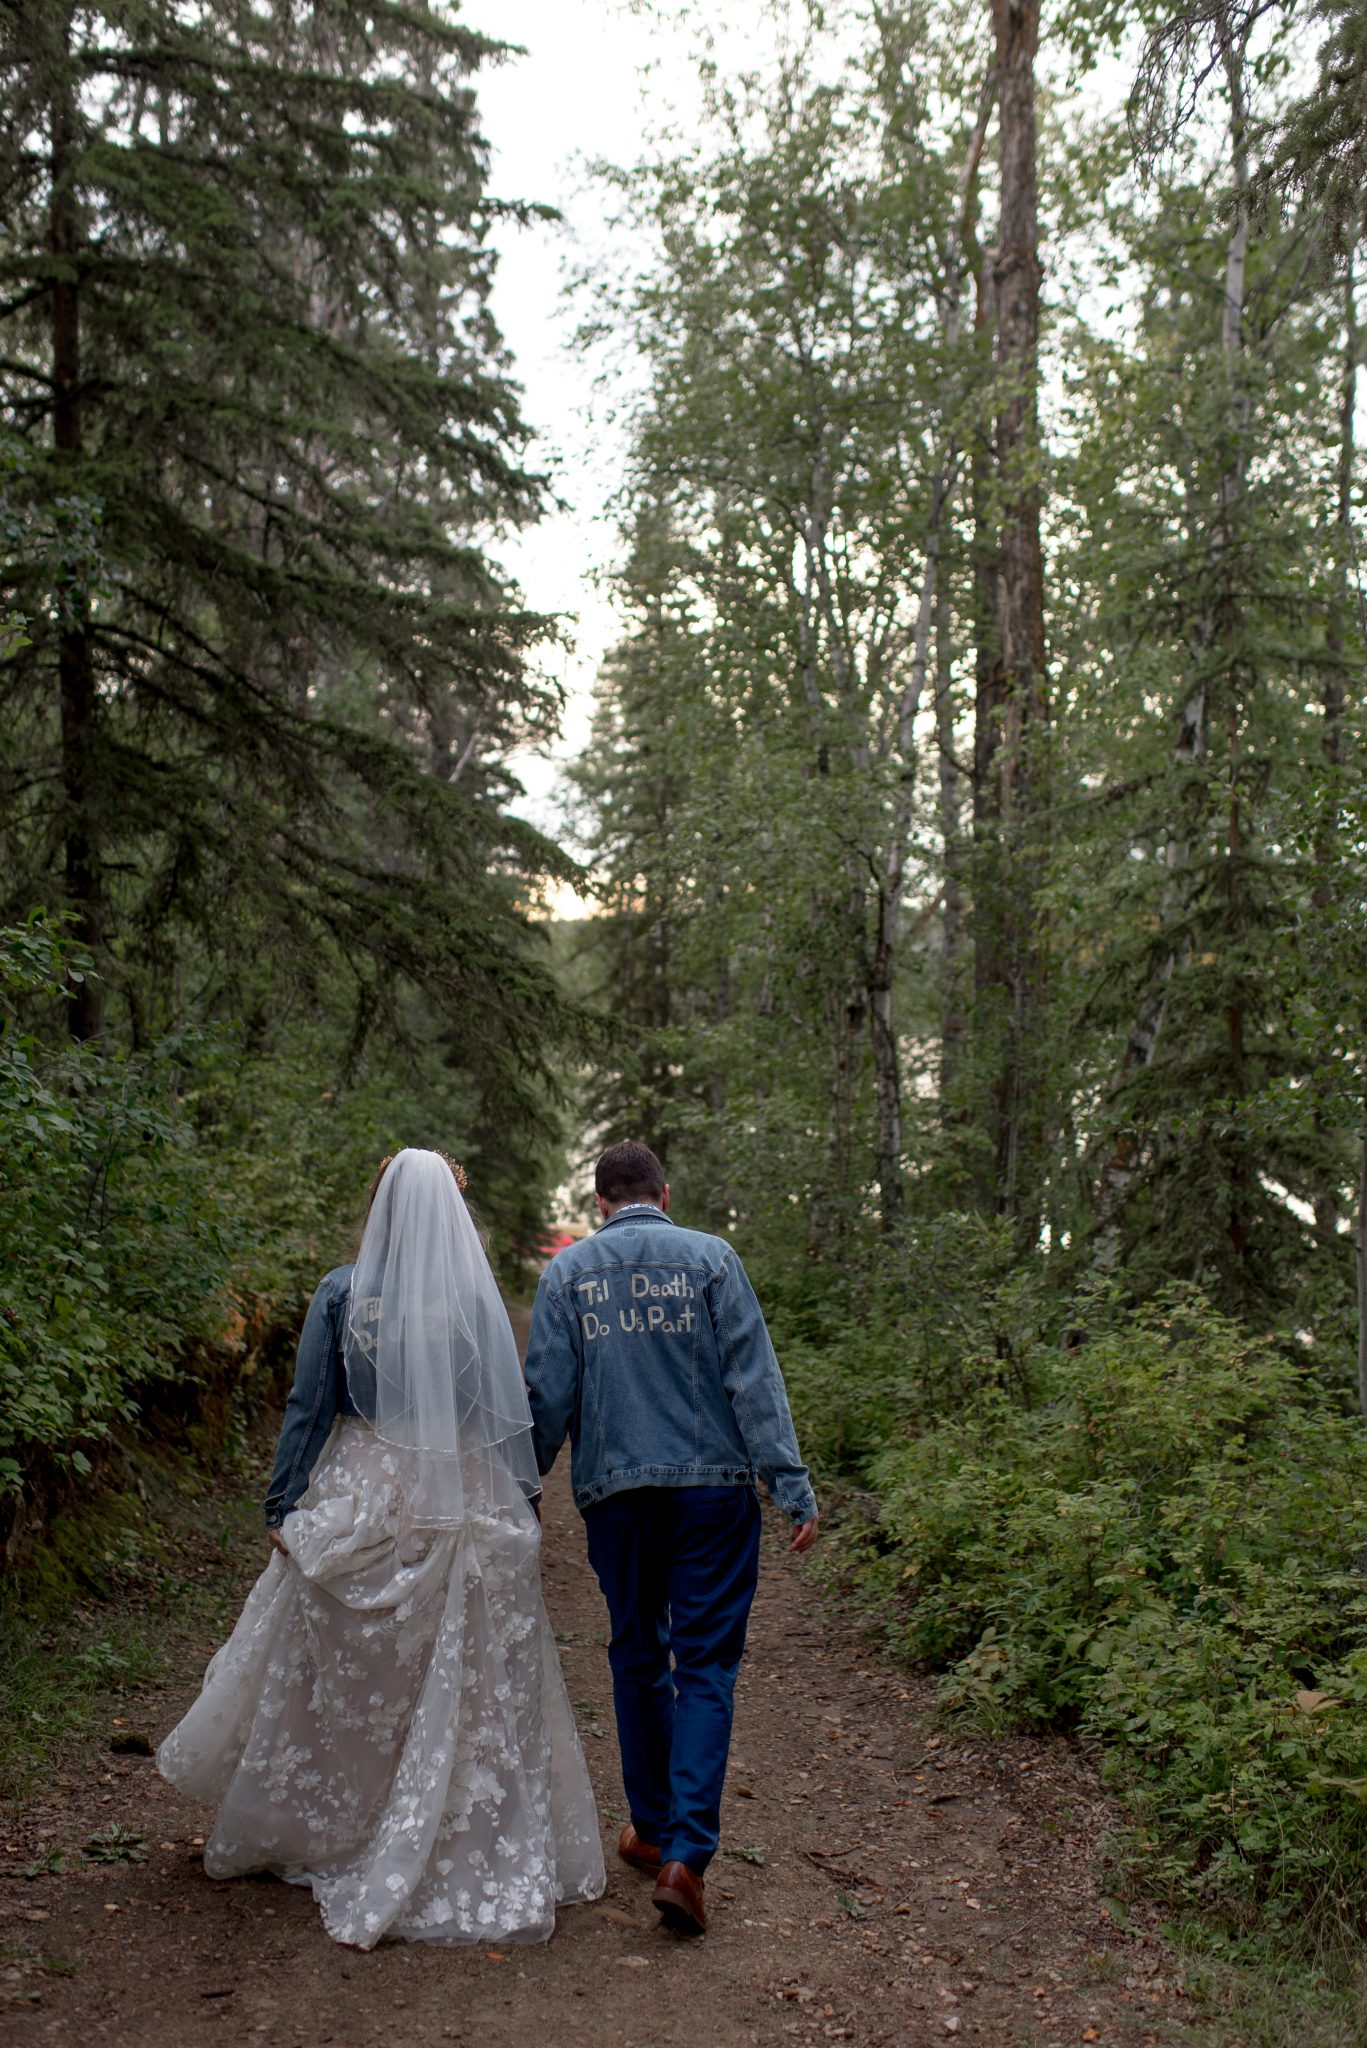 Matching wedding day jean jackets for bride and groom